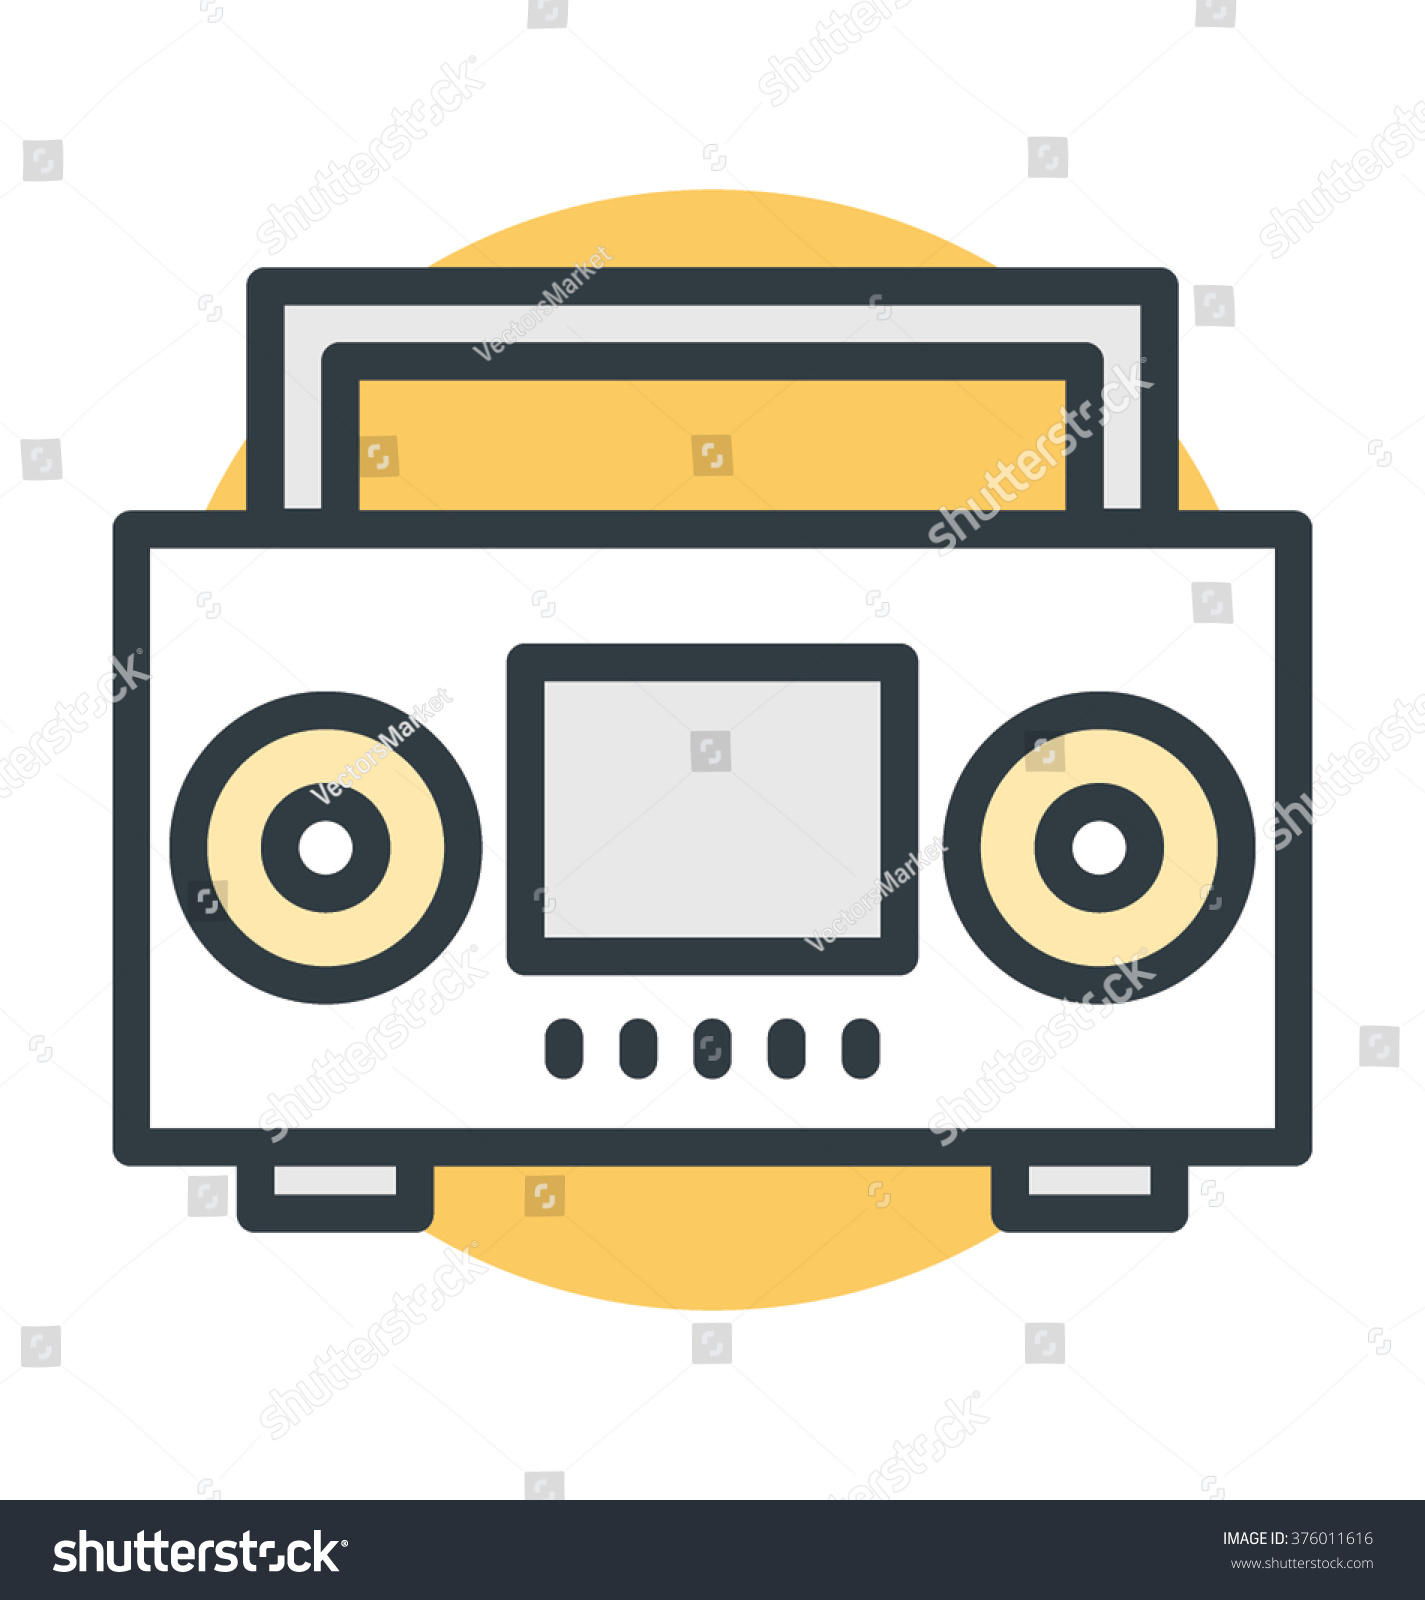 boombox vector icon stock vector 376011616 shutterstock rh shutterstock com old boombox vector boombox vector free